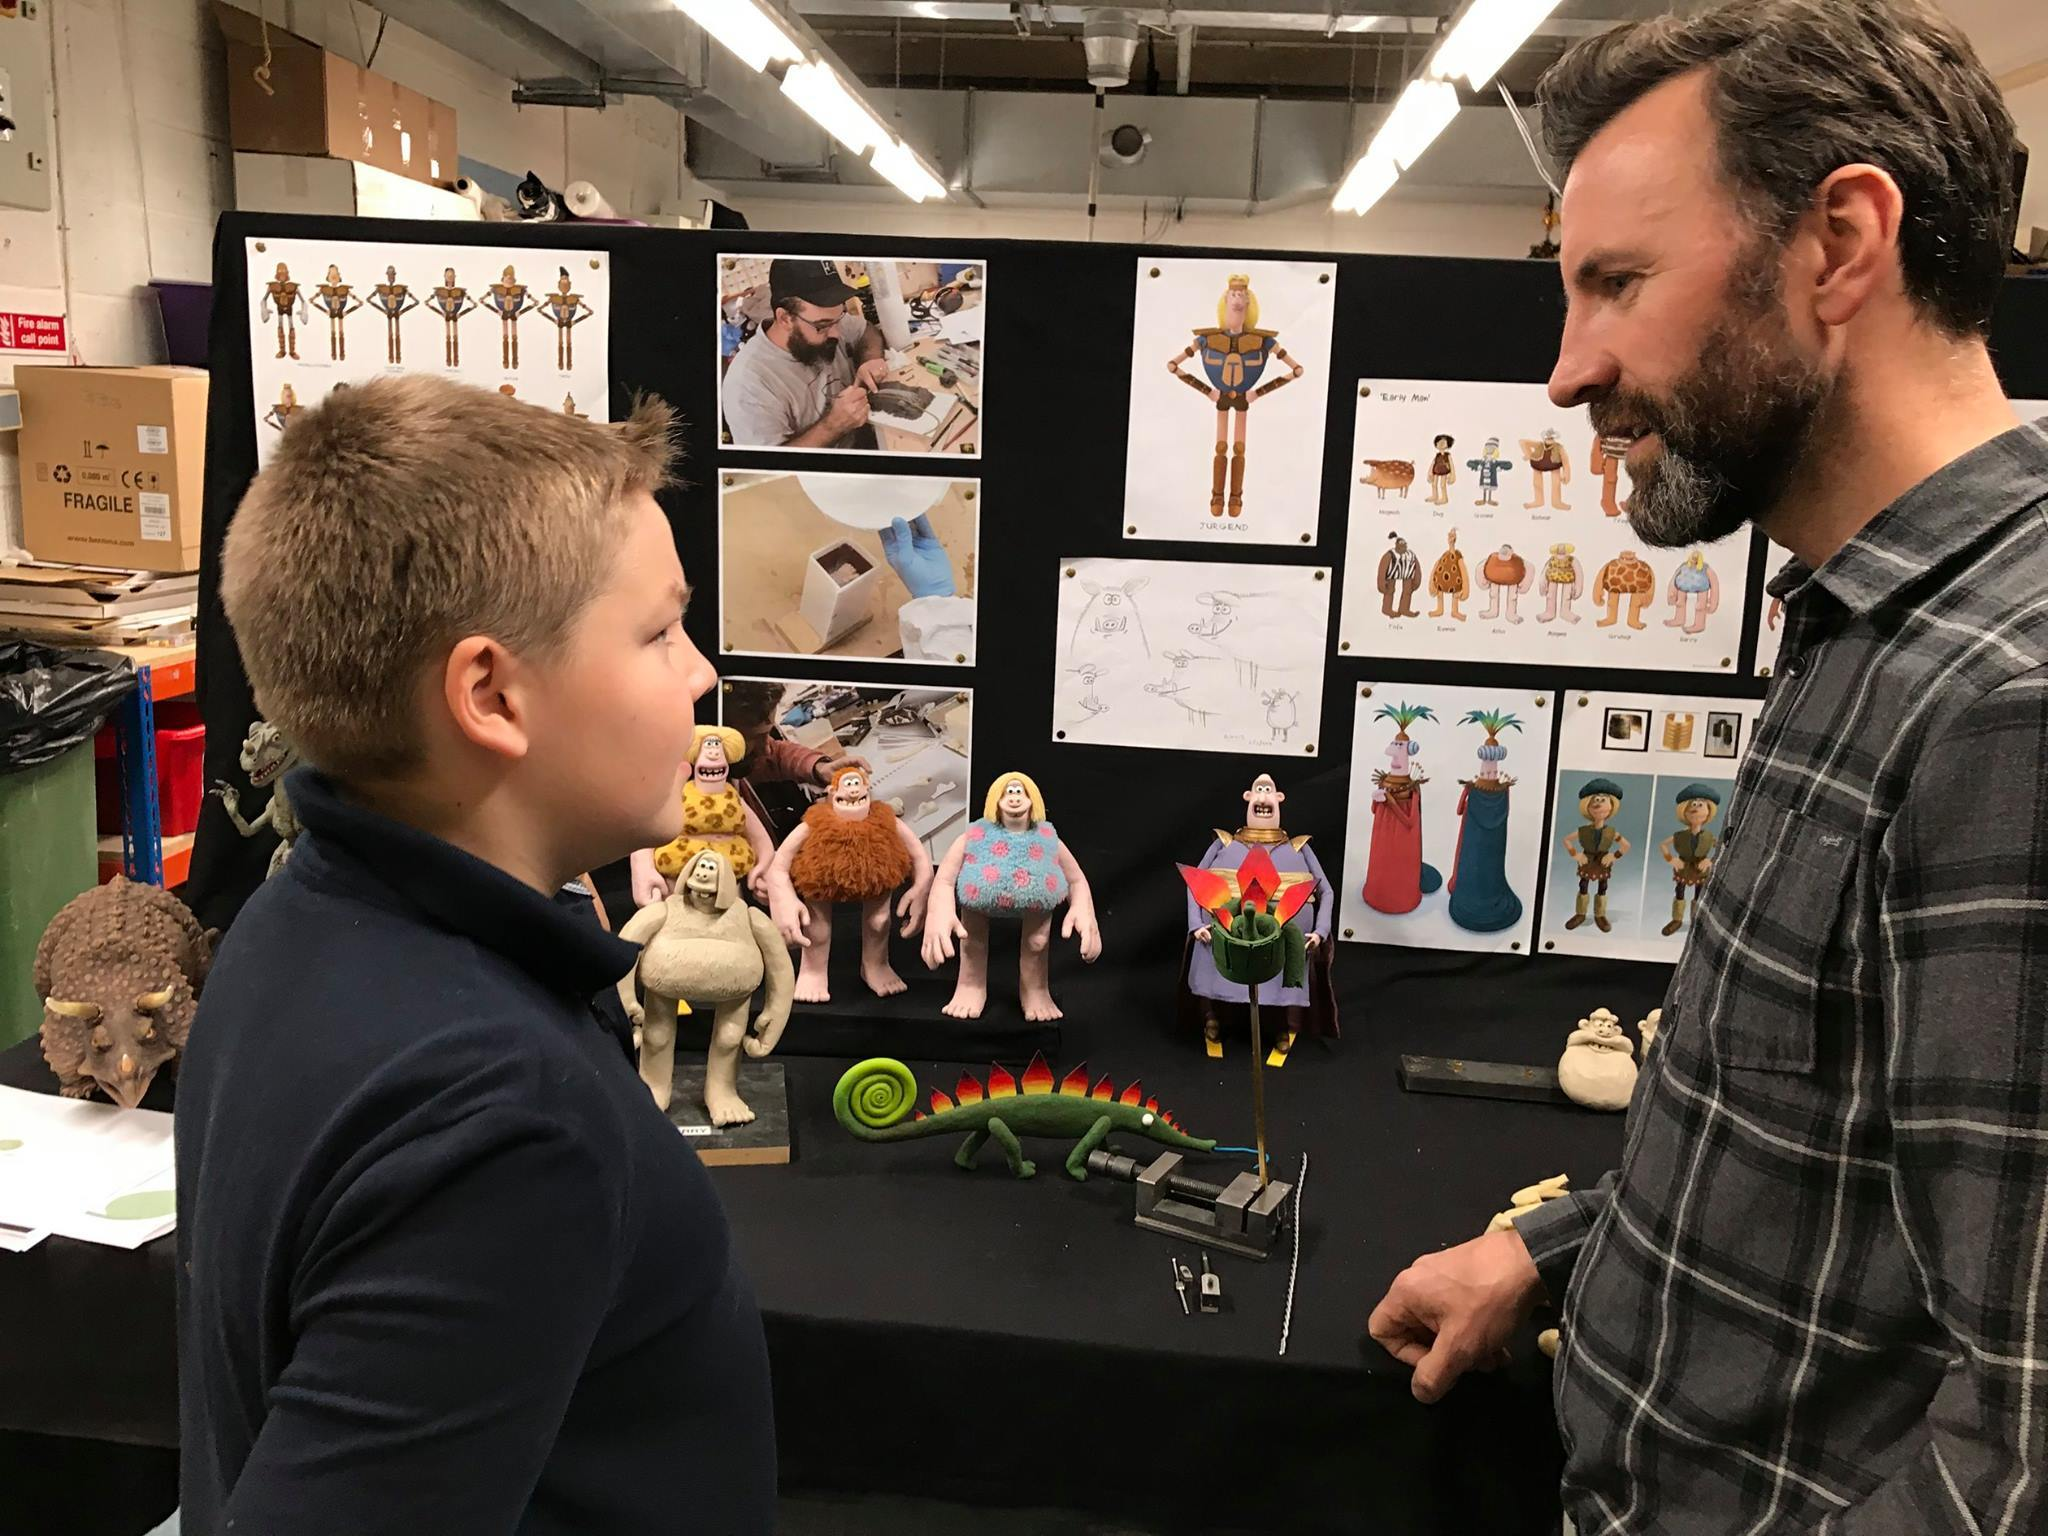 Rory Milne, pictured left, saw his creations come to life at Aardman after winning a national competition.